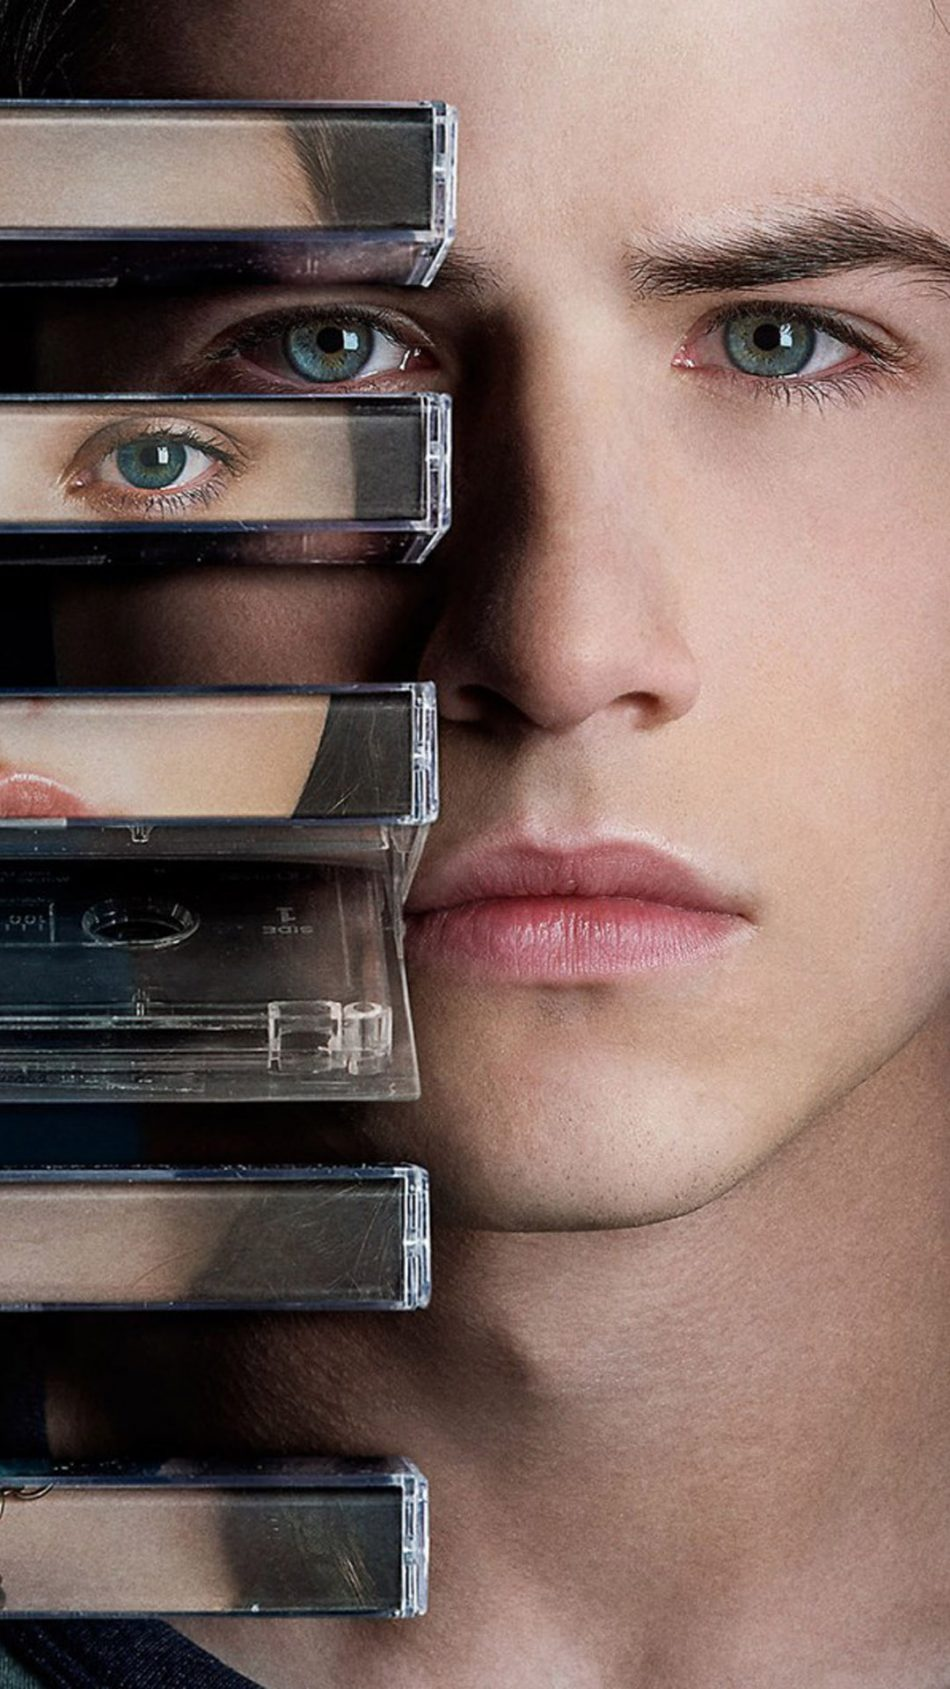 Download Dylan Minnette In 13 Reasons Why Free Pure 4k Ultra